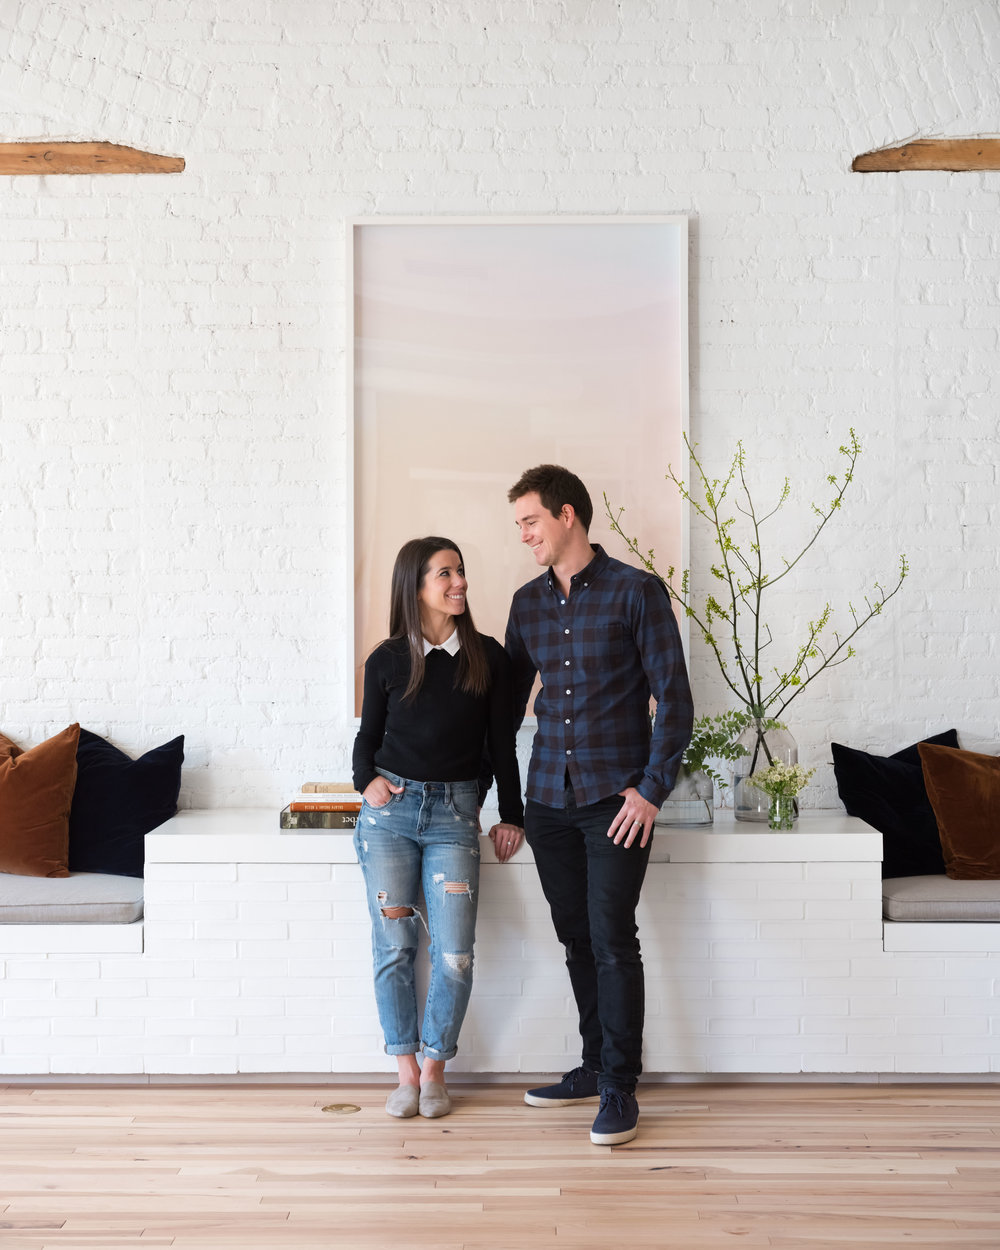 Design Competitions   HGTV's Faces of Design - Finalists 2018